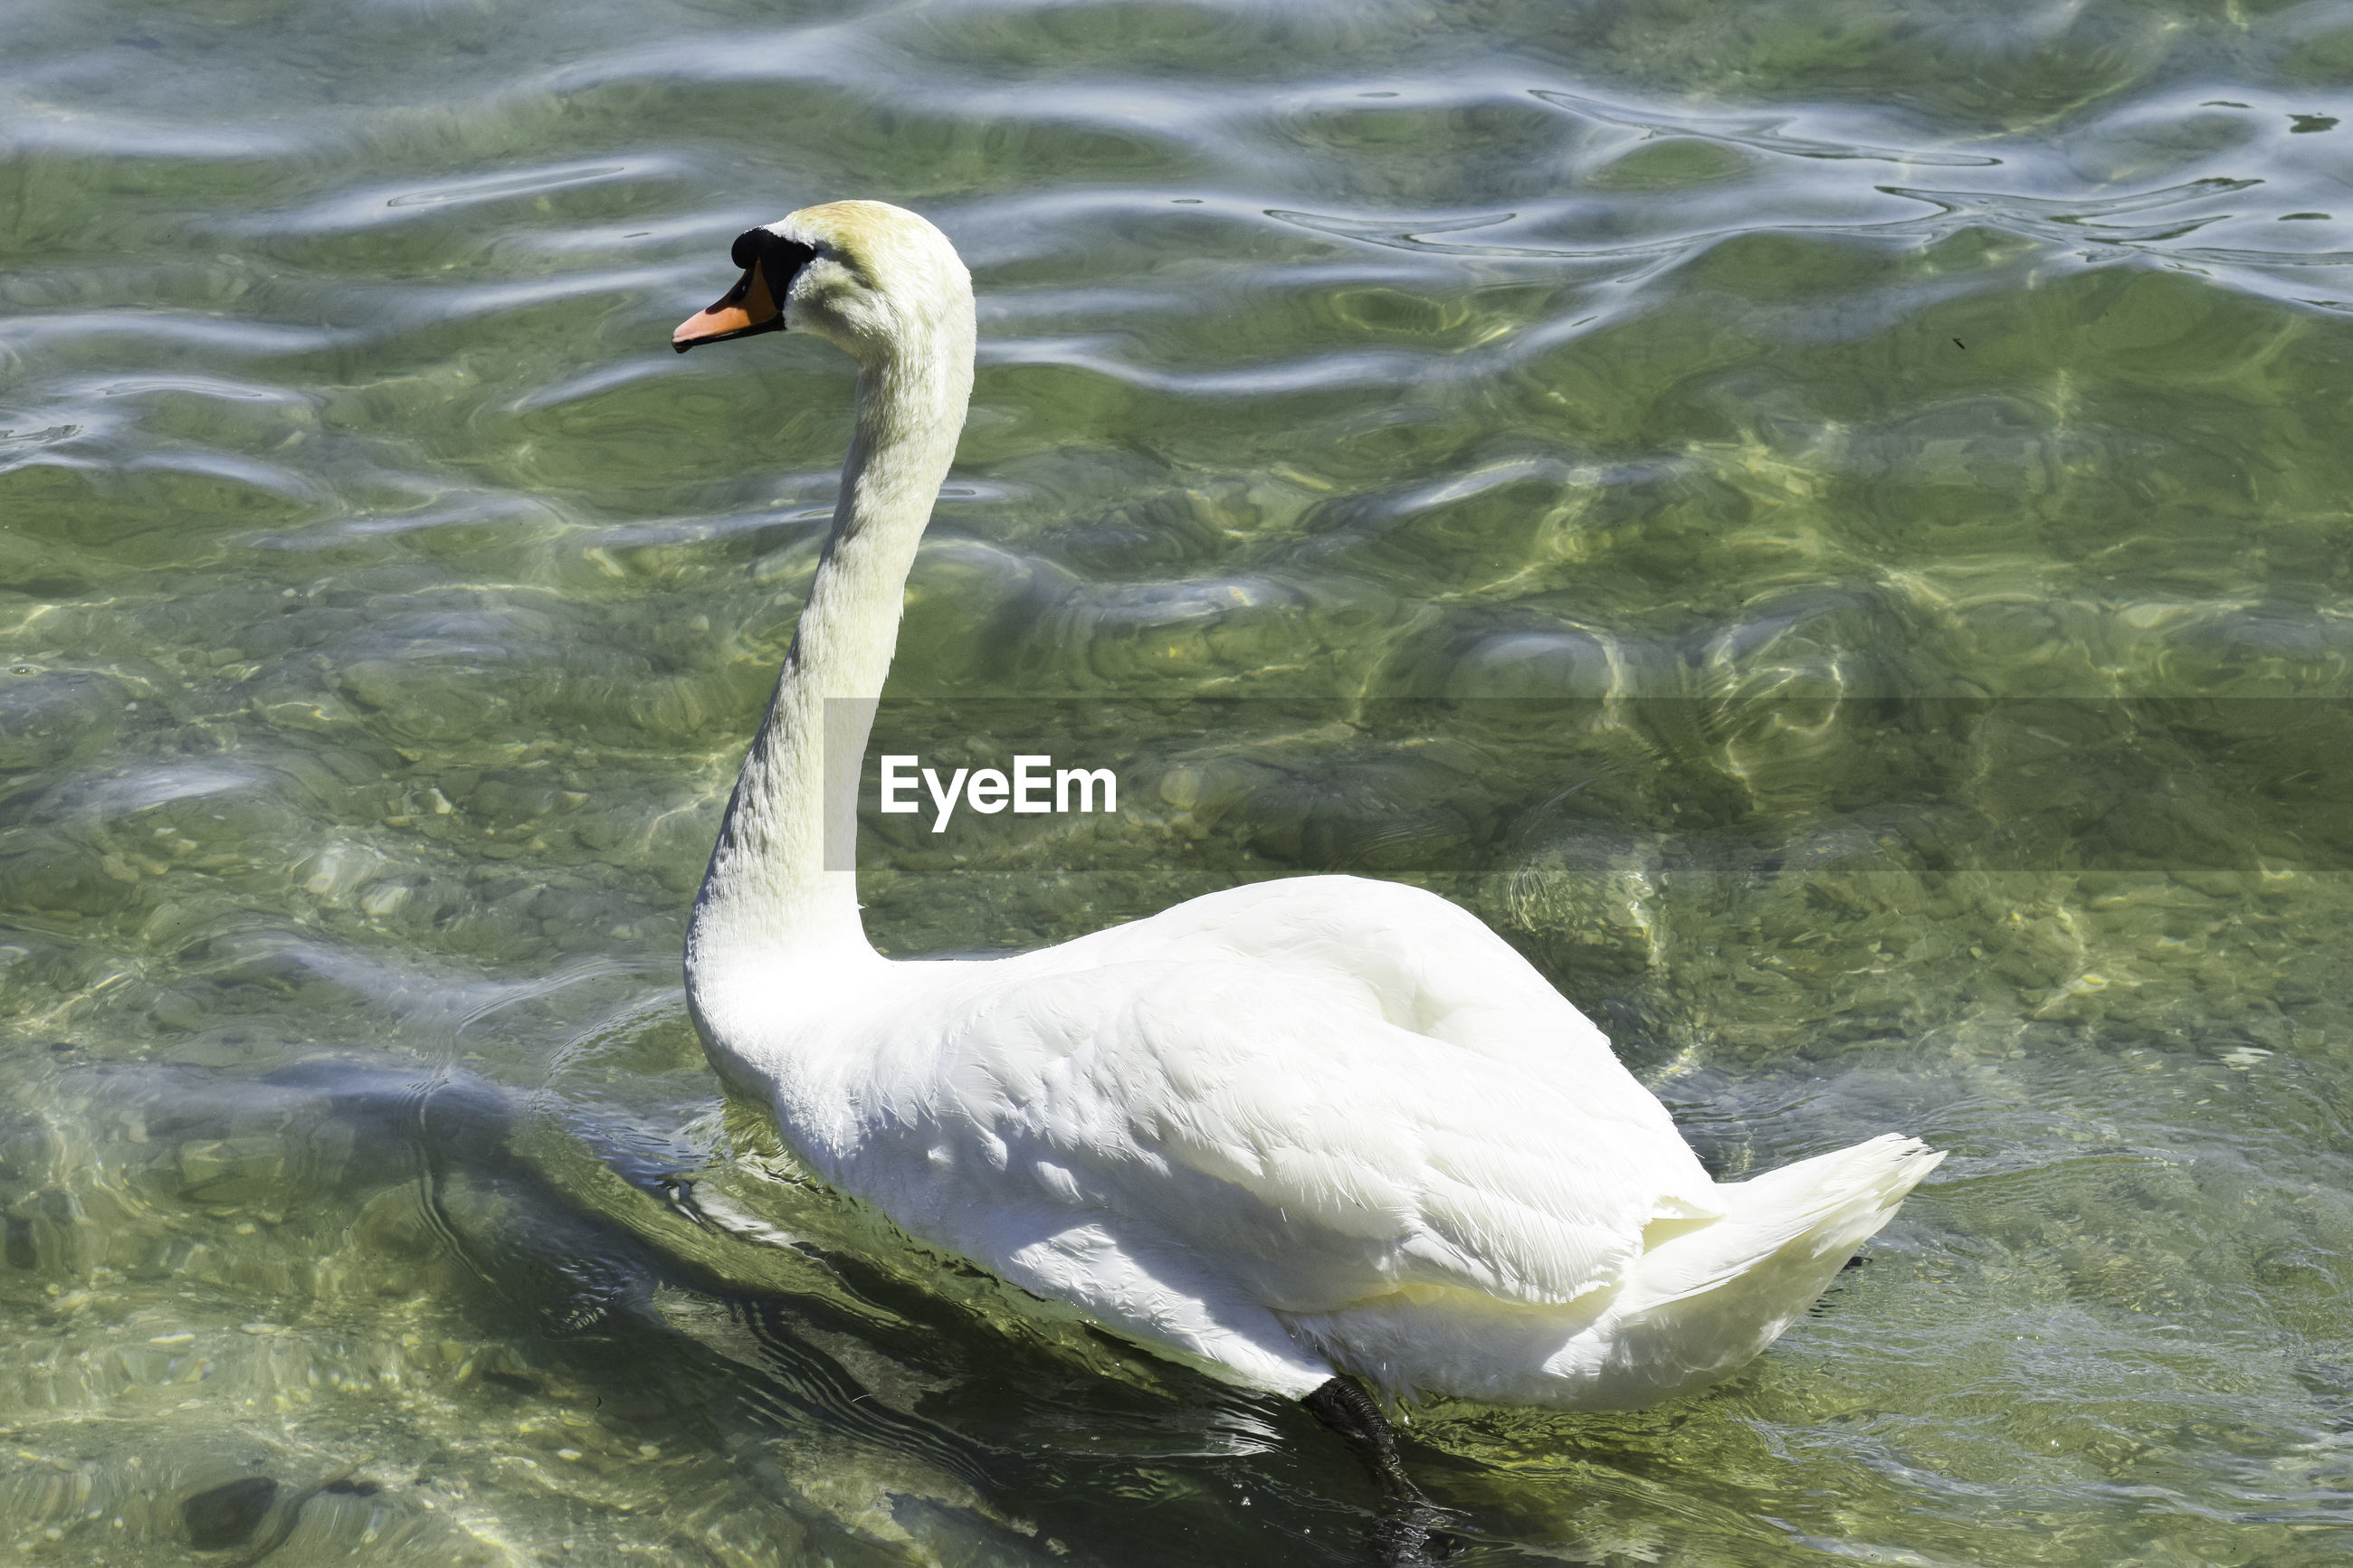 HIGH ANGLE VIEW OF SWAN FLOATING IN LAKE